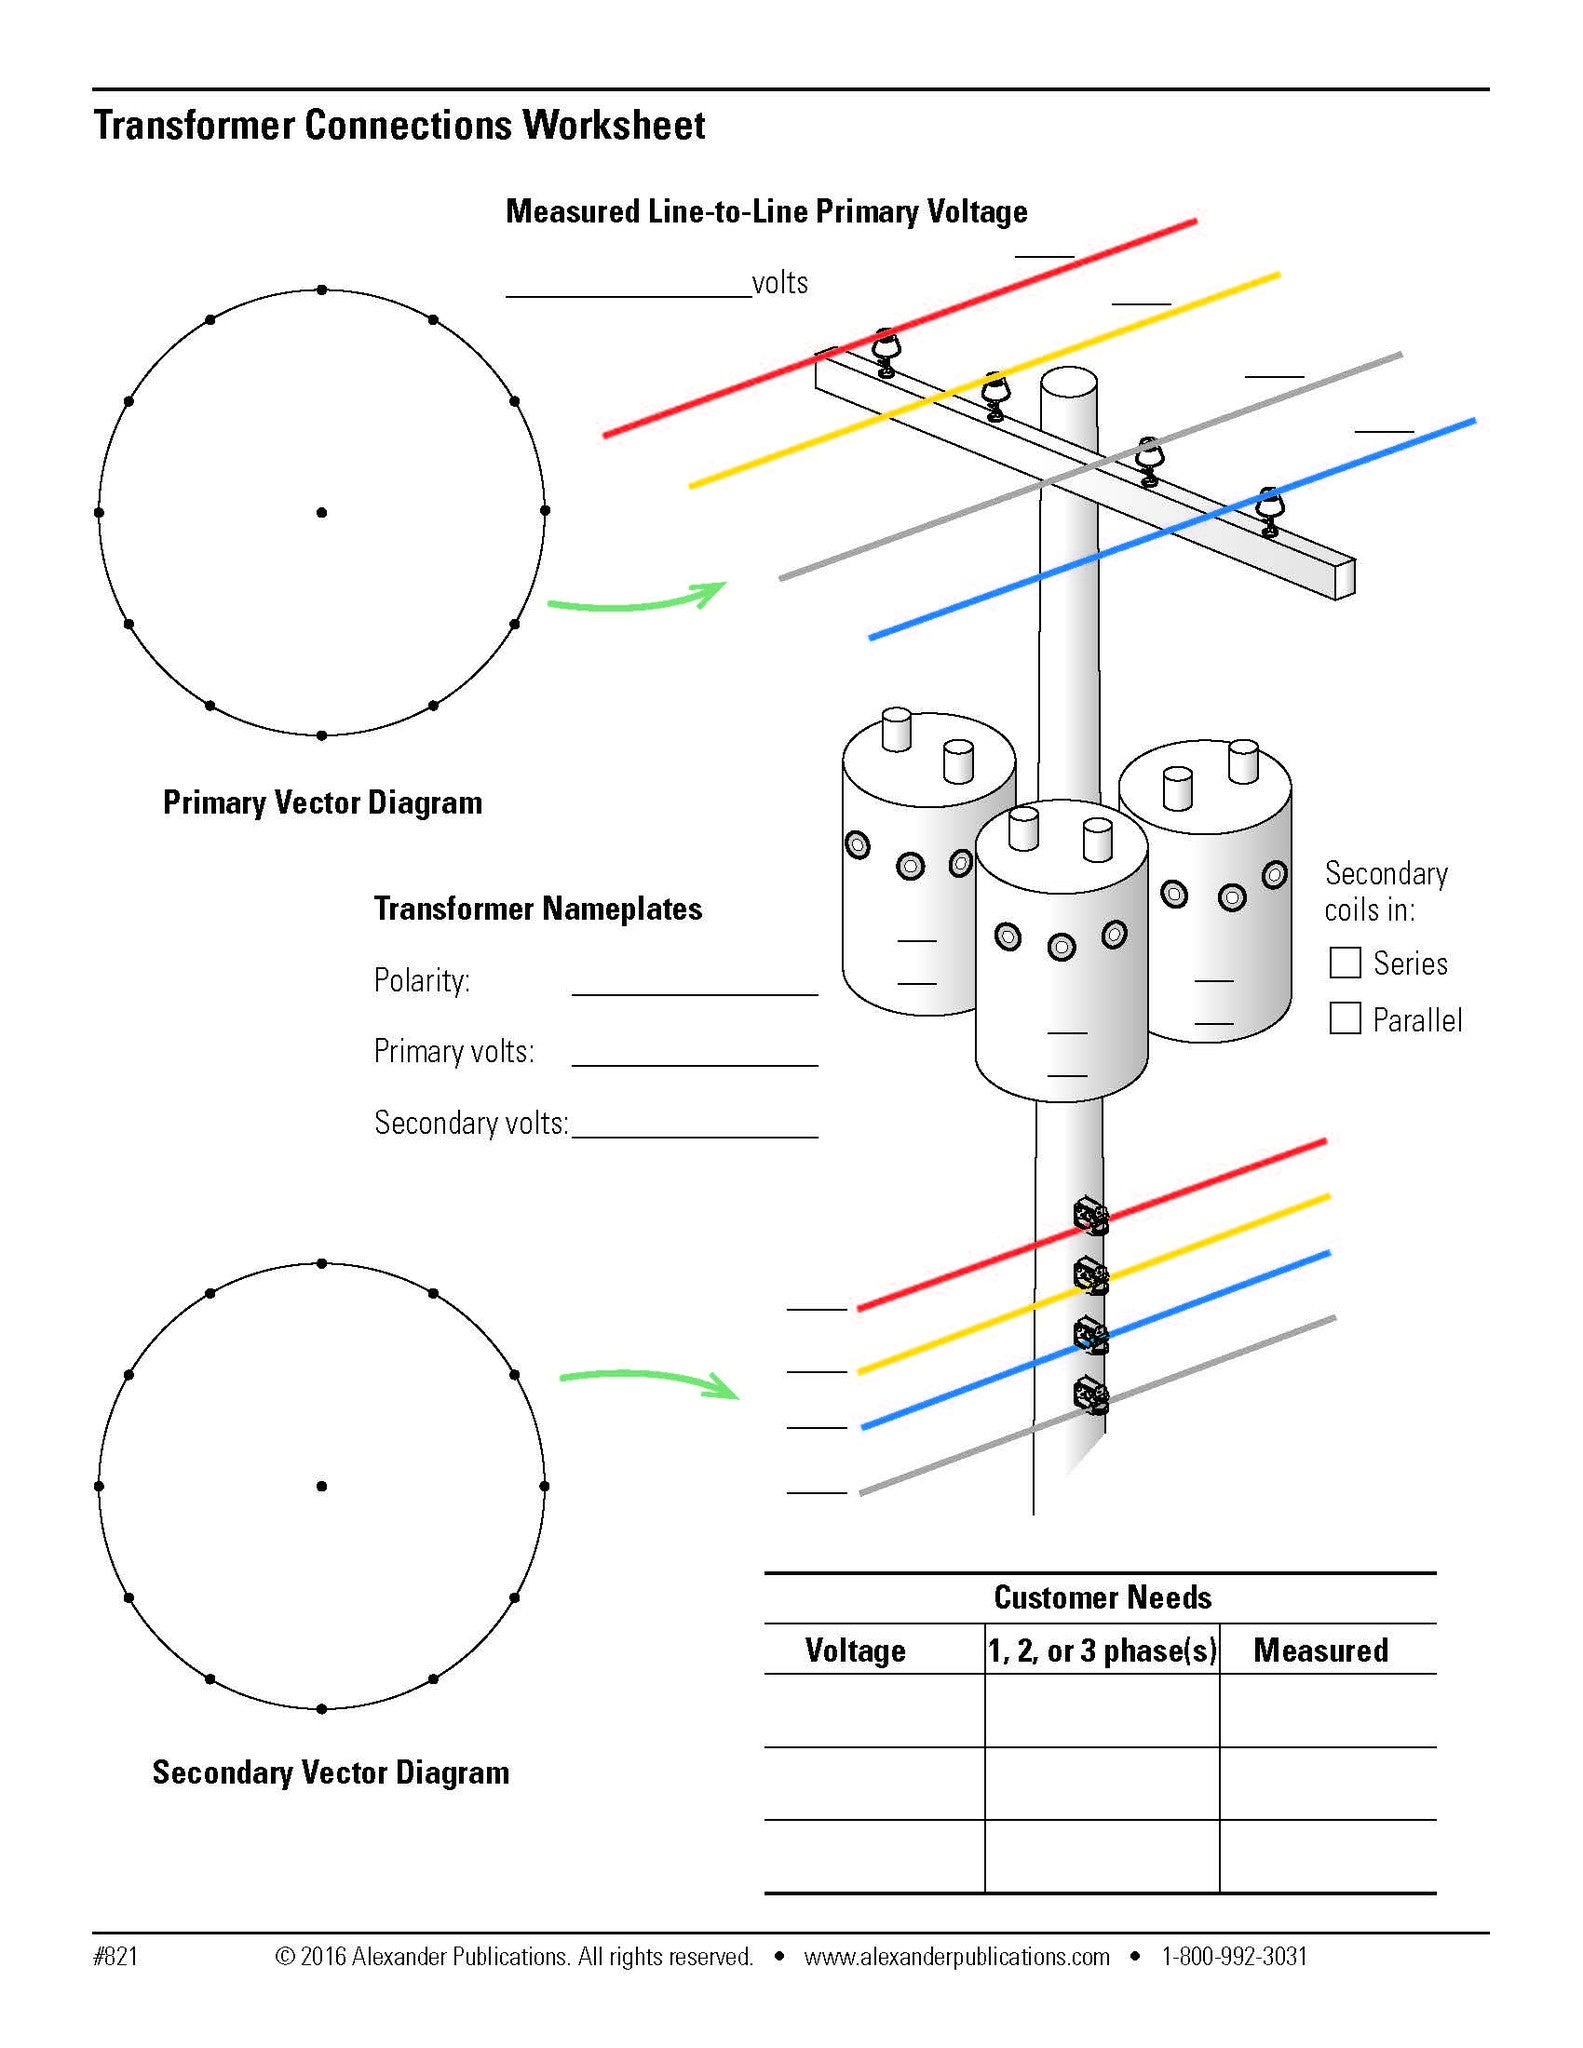 transformer connections worksheets  u2013 alexander publications